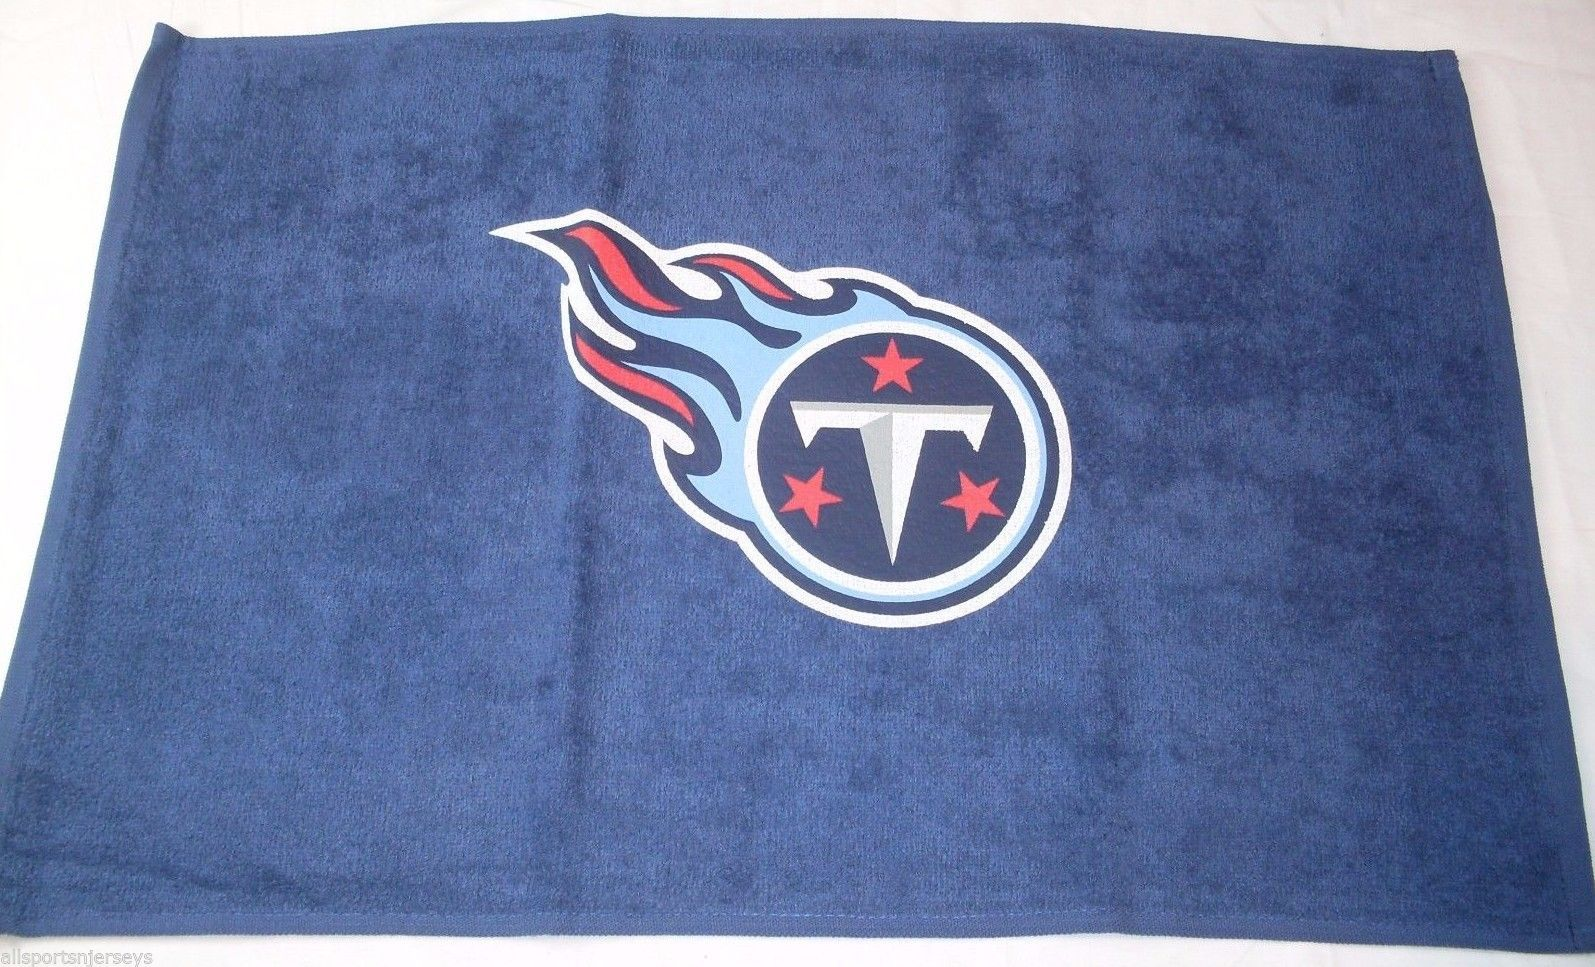 NFL NWT 15x25 SPORTS FAN TOWEL- TENNESSEE TITANS  - CENTERED LOGO ONLY - $16.95